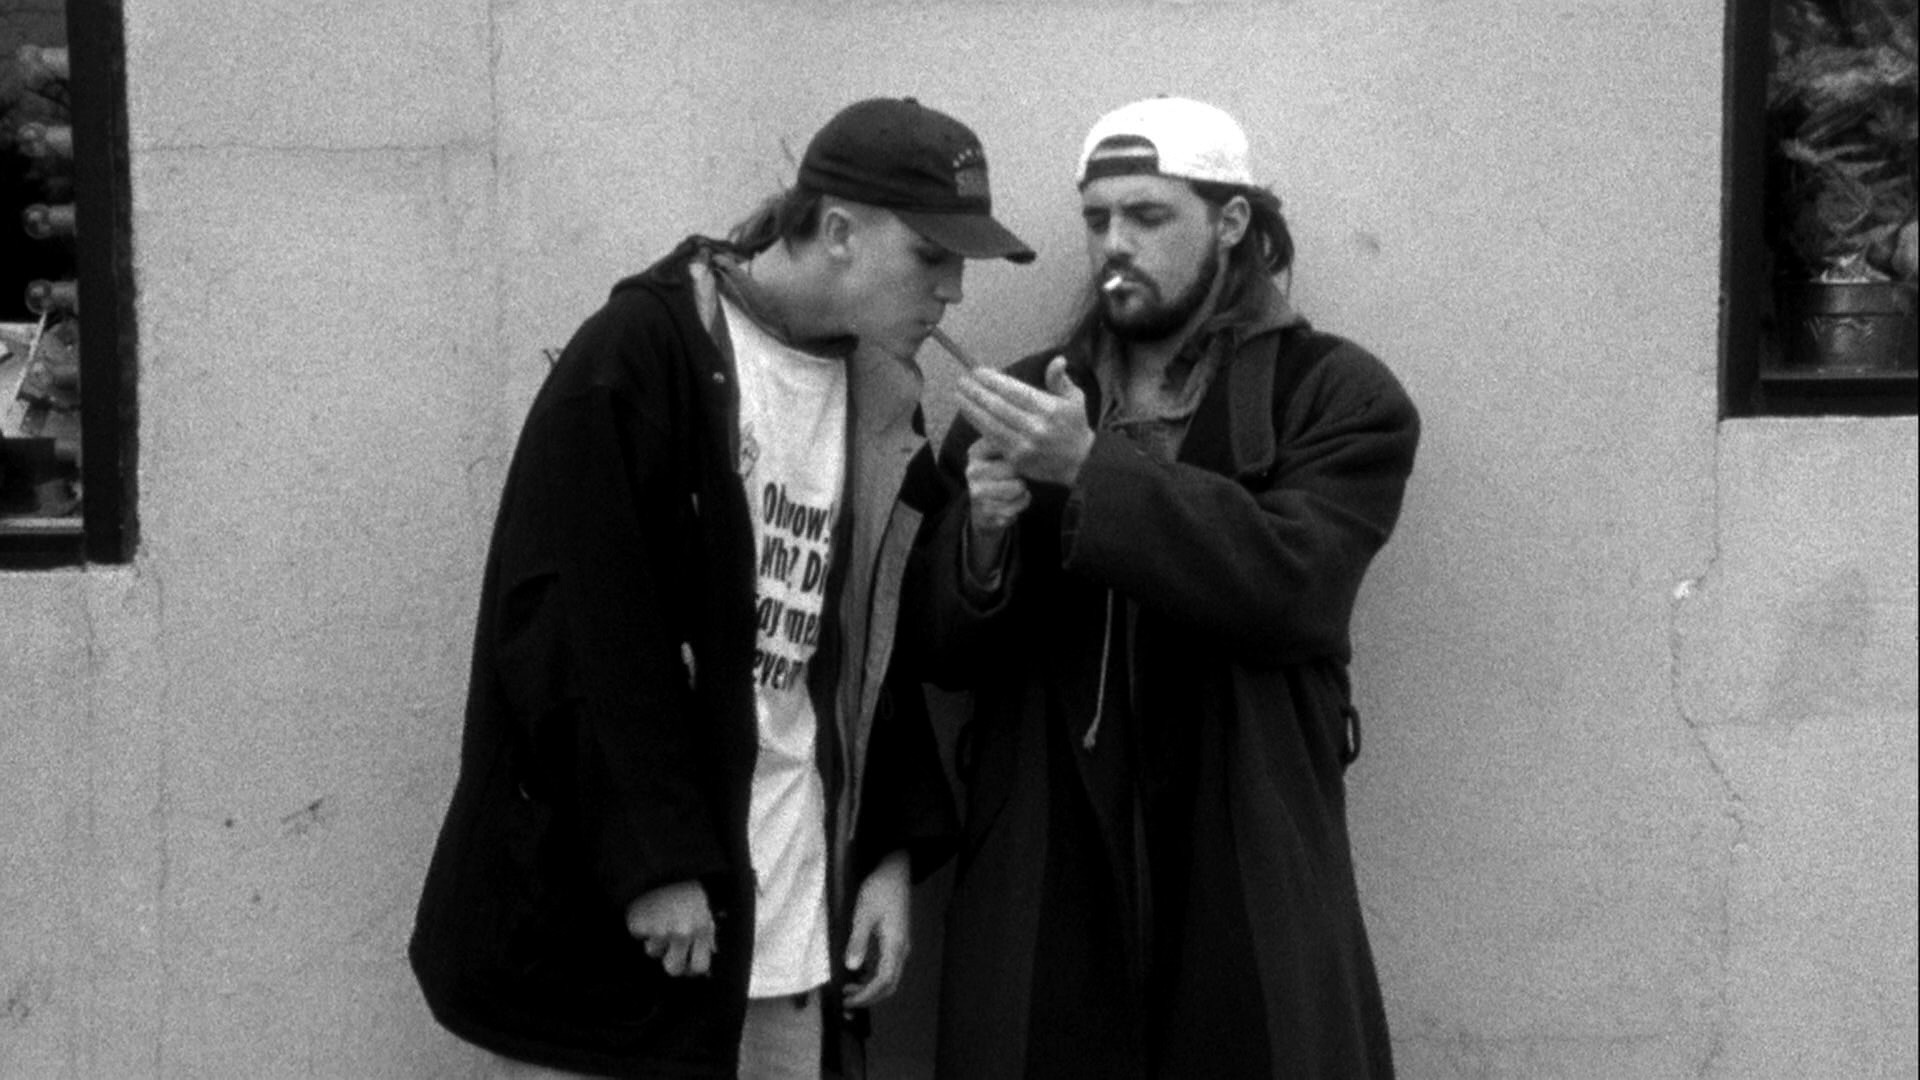 1920x1080 Jay and Silent Bob Google Skins Jay and Silent Bob Google Backgrounds